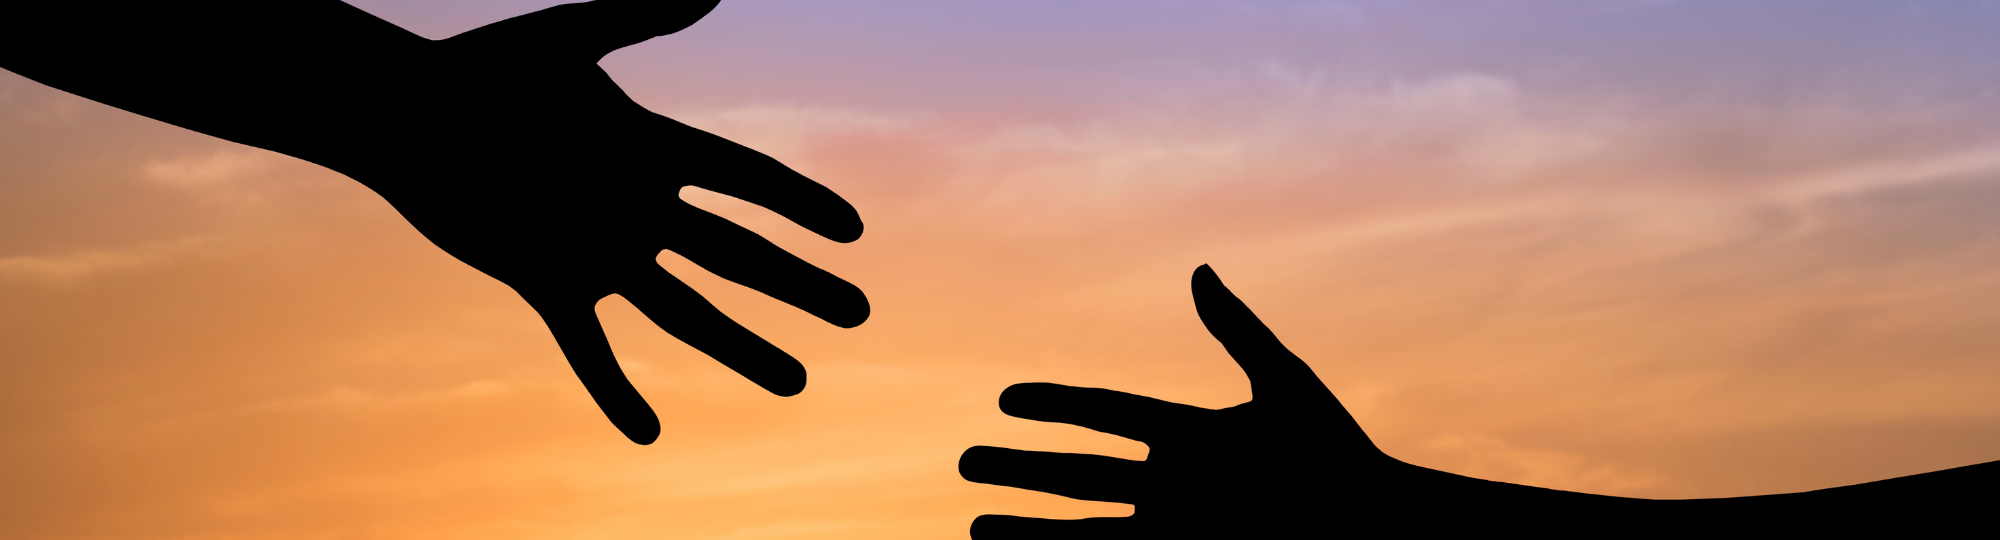 A helping hand reaches for another hand, silhouetted against a colorful sunrise